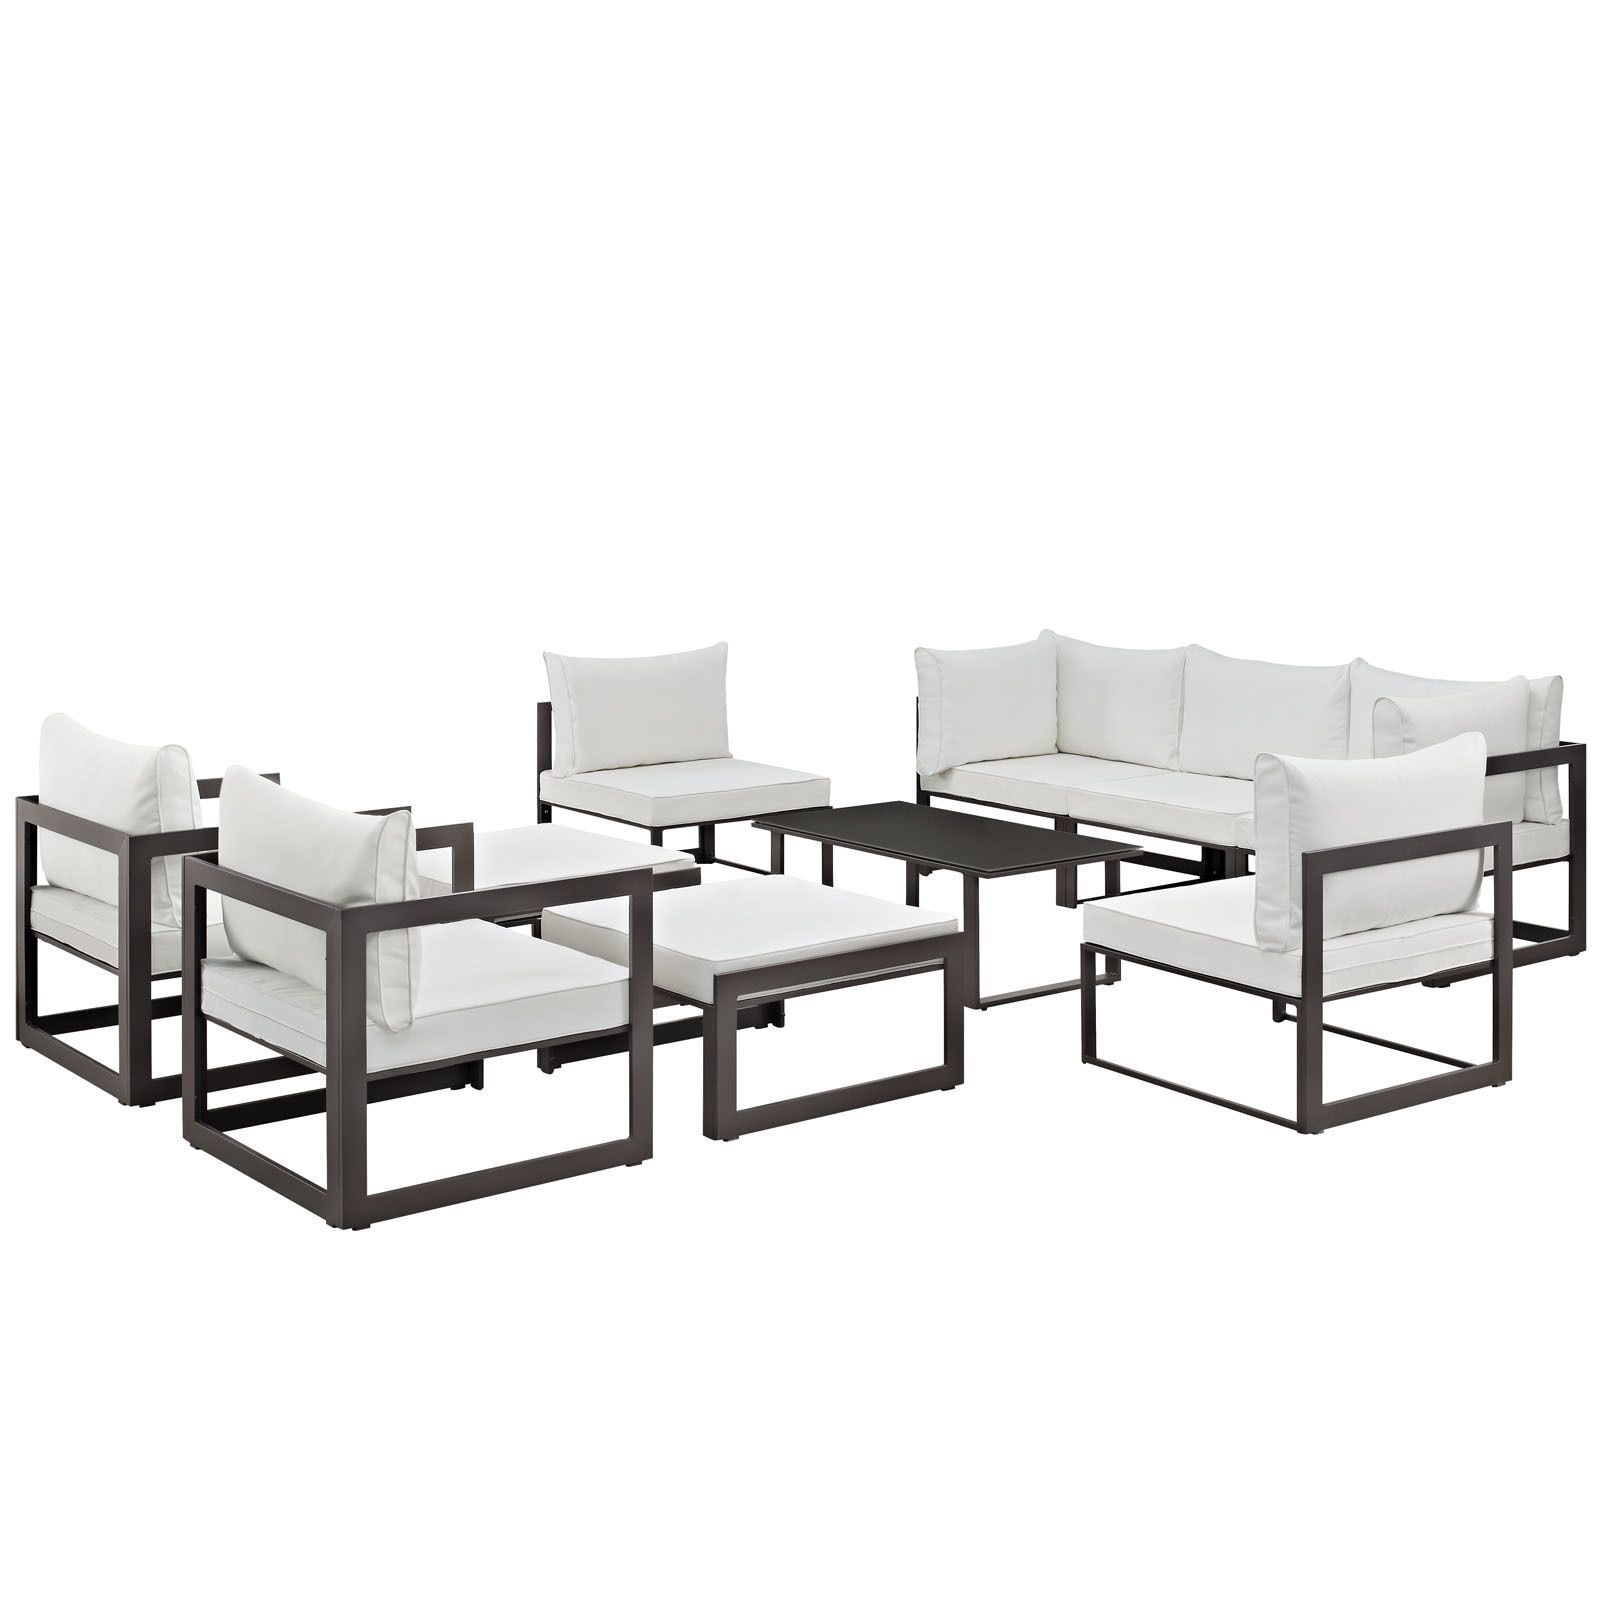 Modway Chance 10 piece Outdoor Patio Sectional Sofa Set White